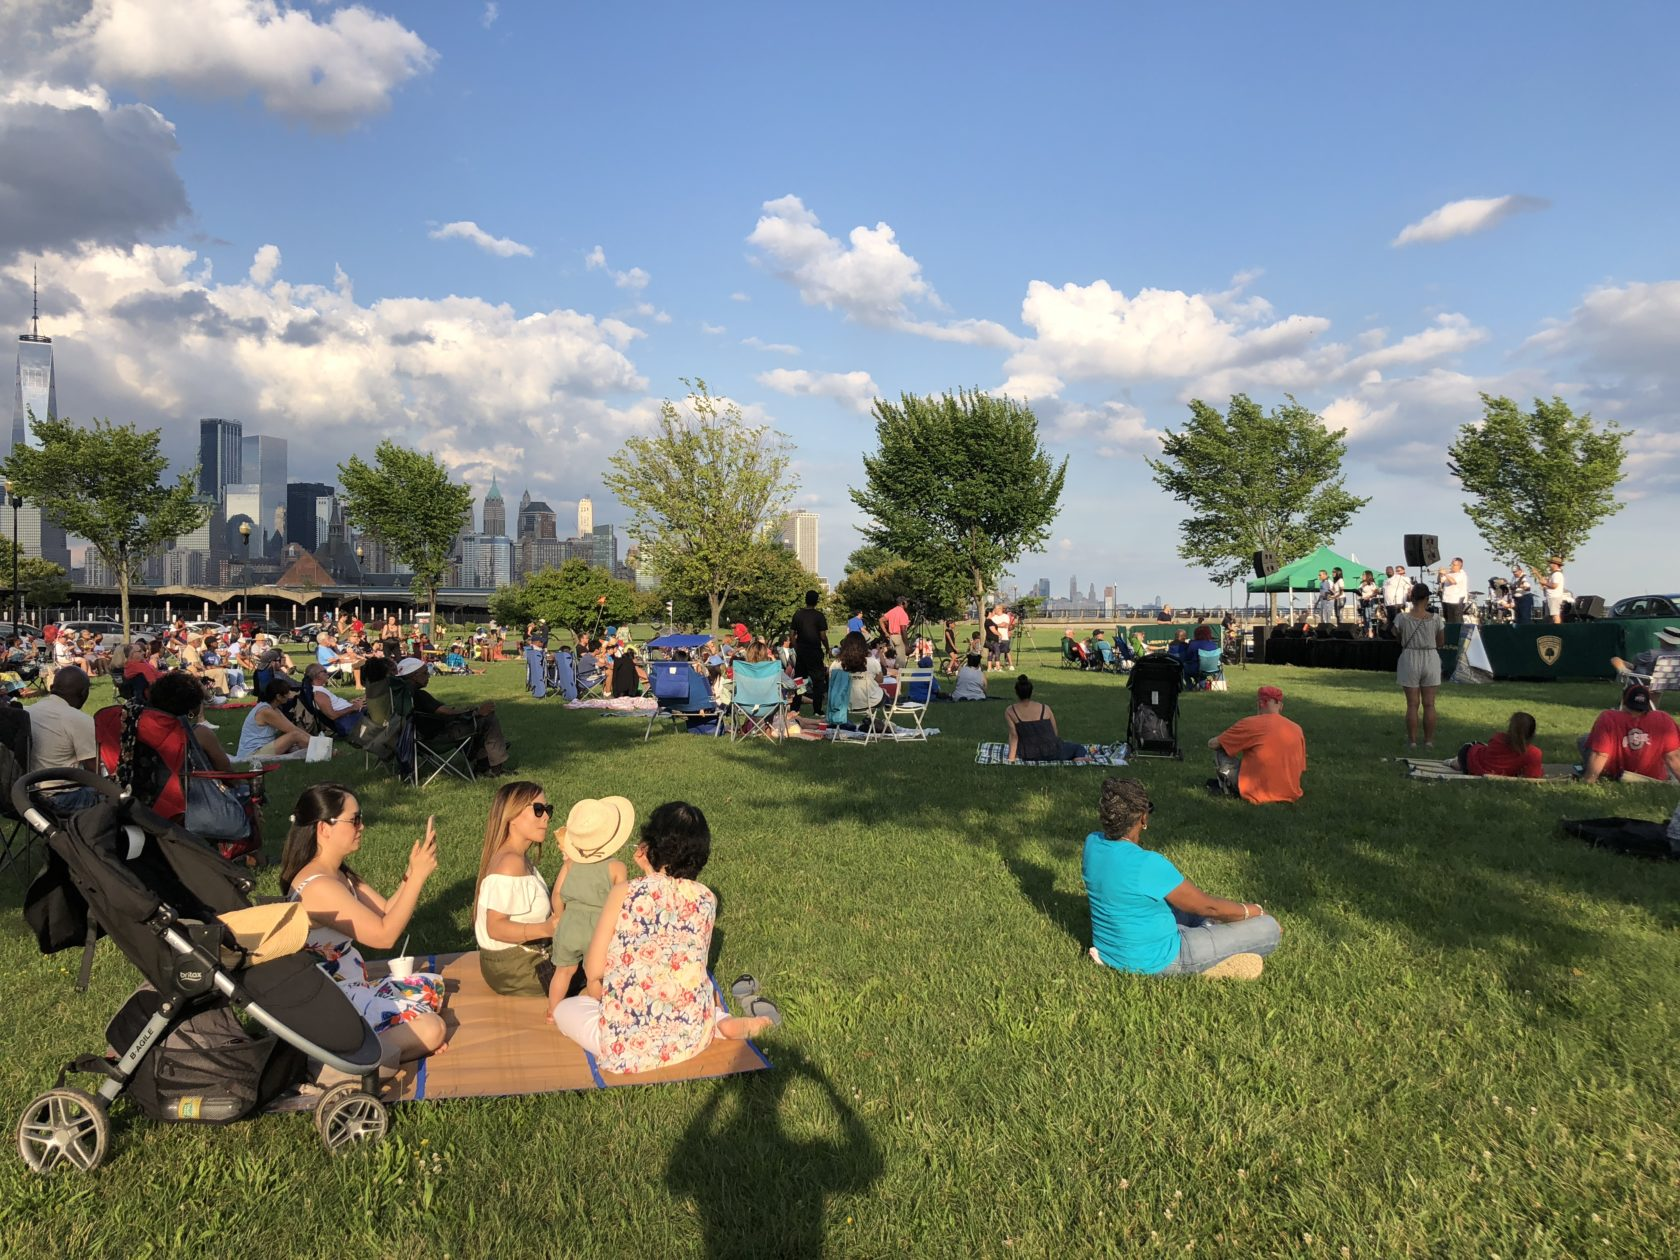 Summerfest 2018: Free Concerts in Liberty State Park